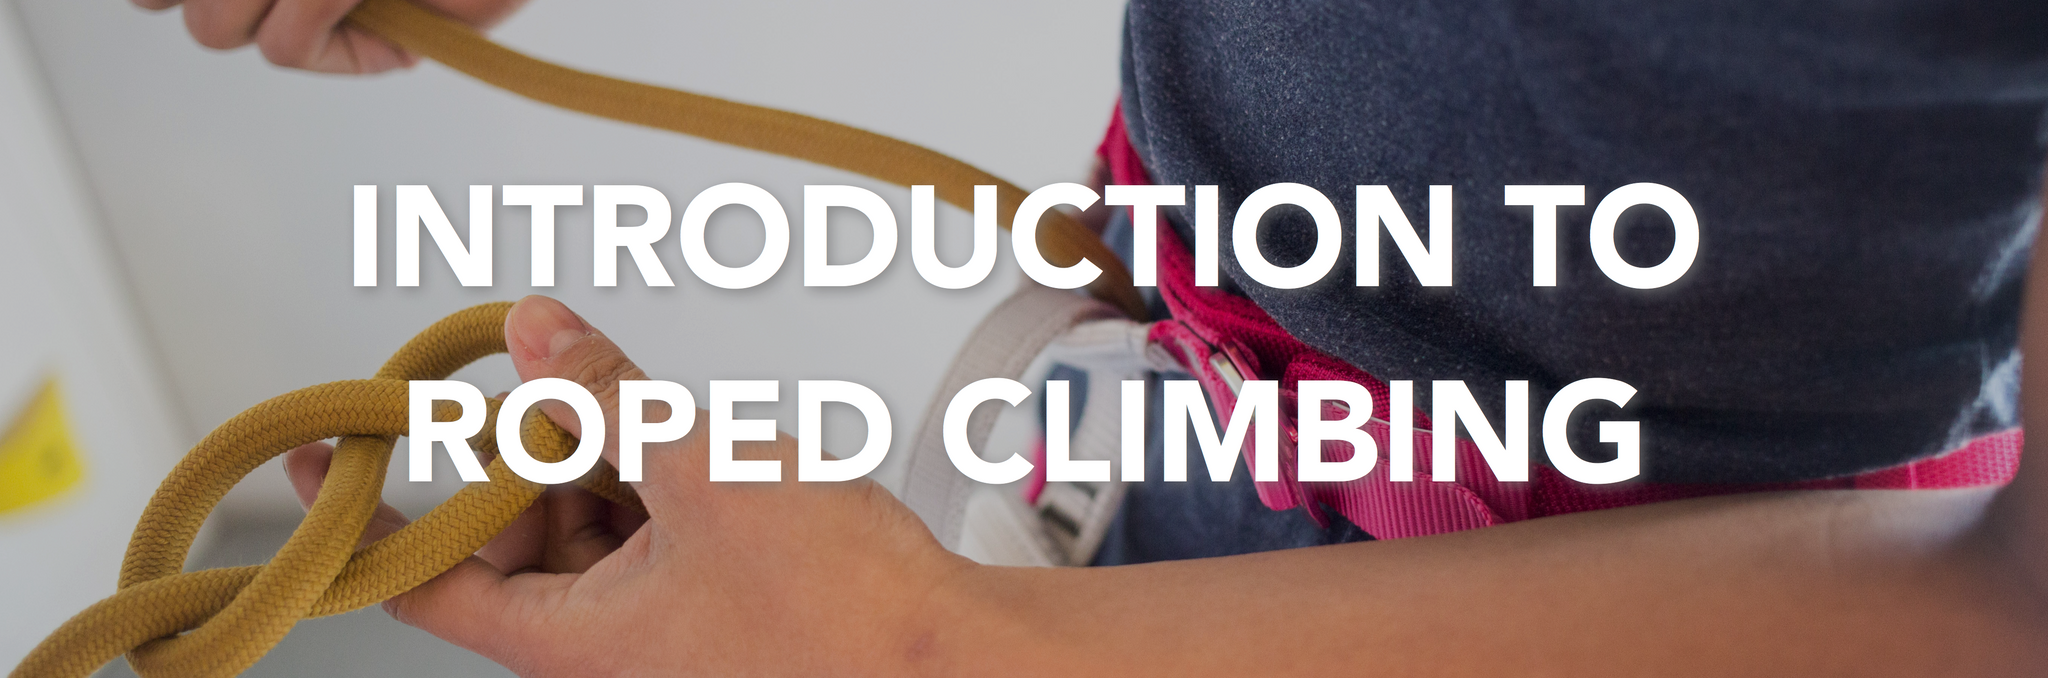 introduction to roped climbing